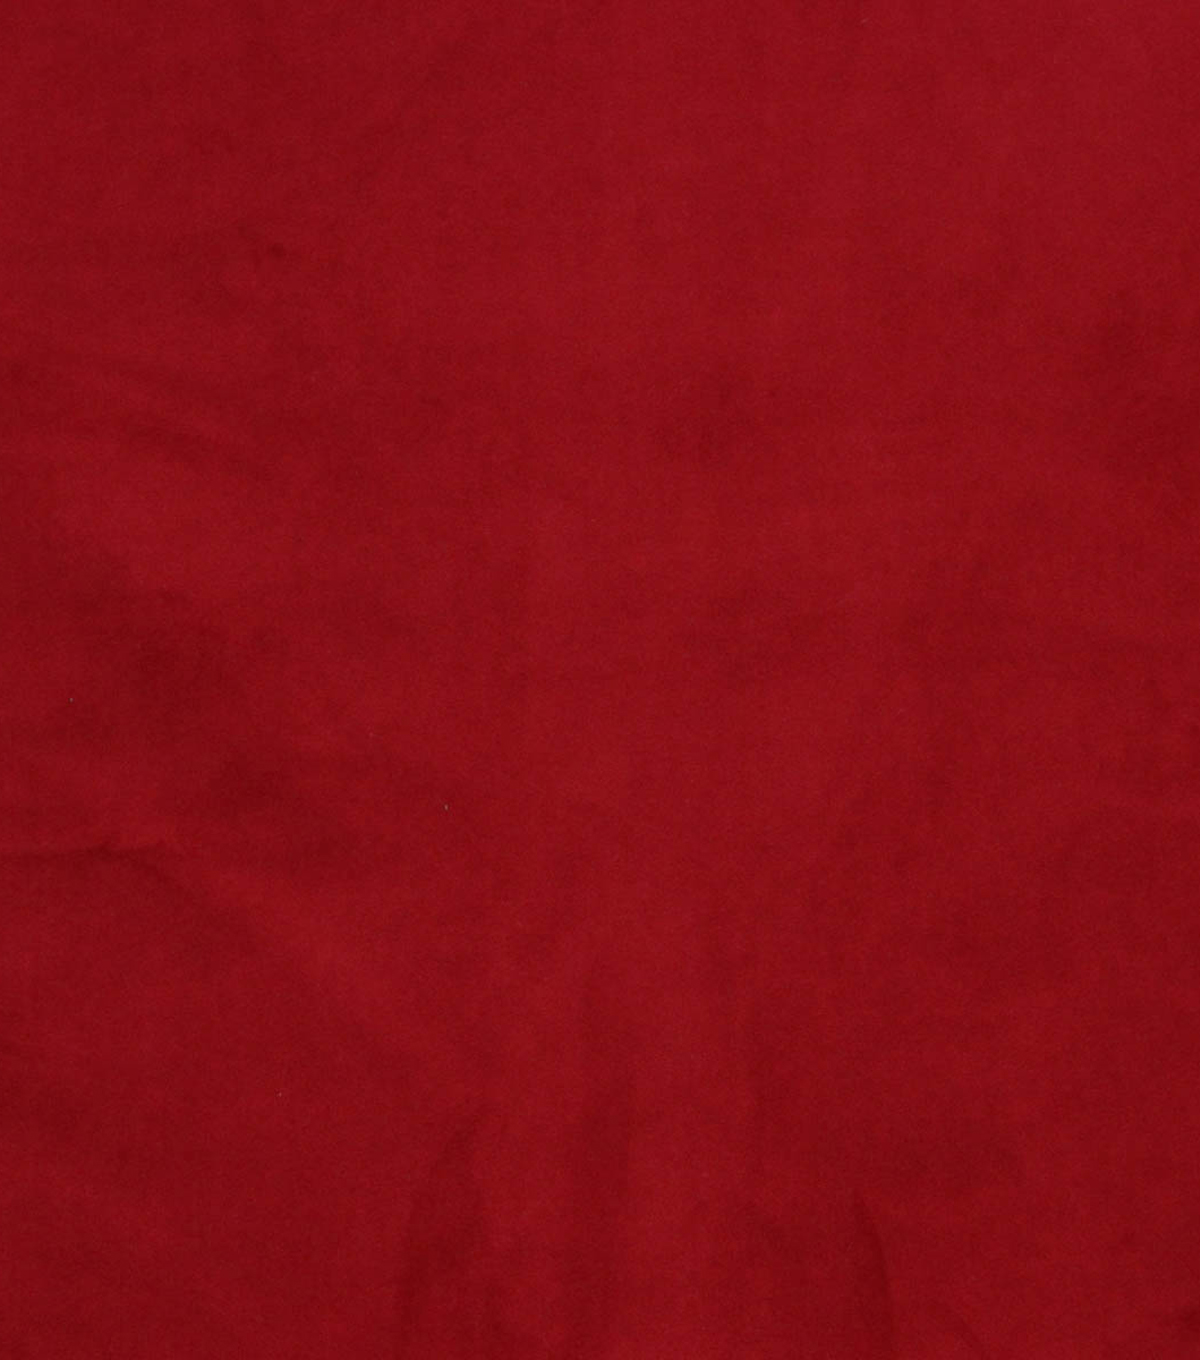 Hudson 43 Velvet Multi-Purpose Home Decor Fabric 56\u0022-Red